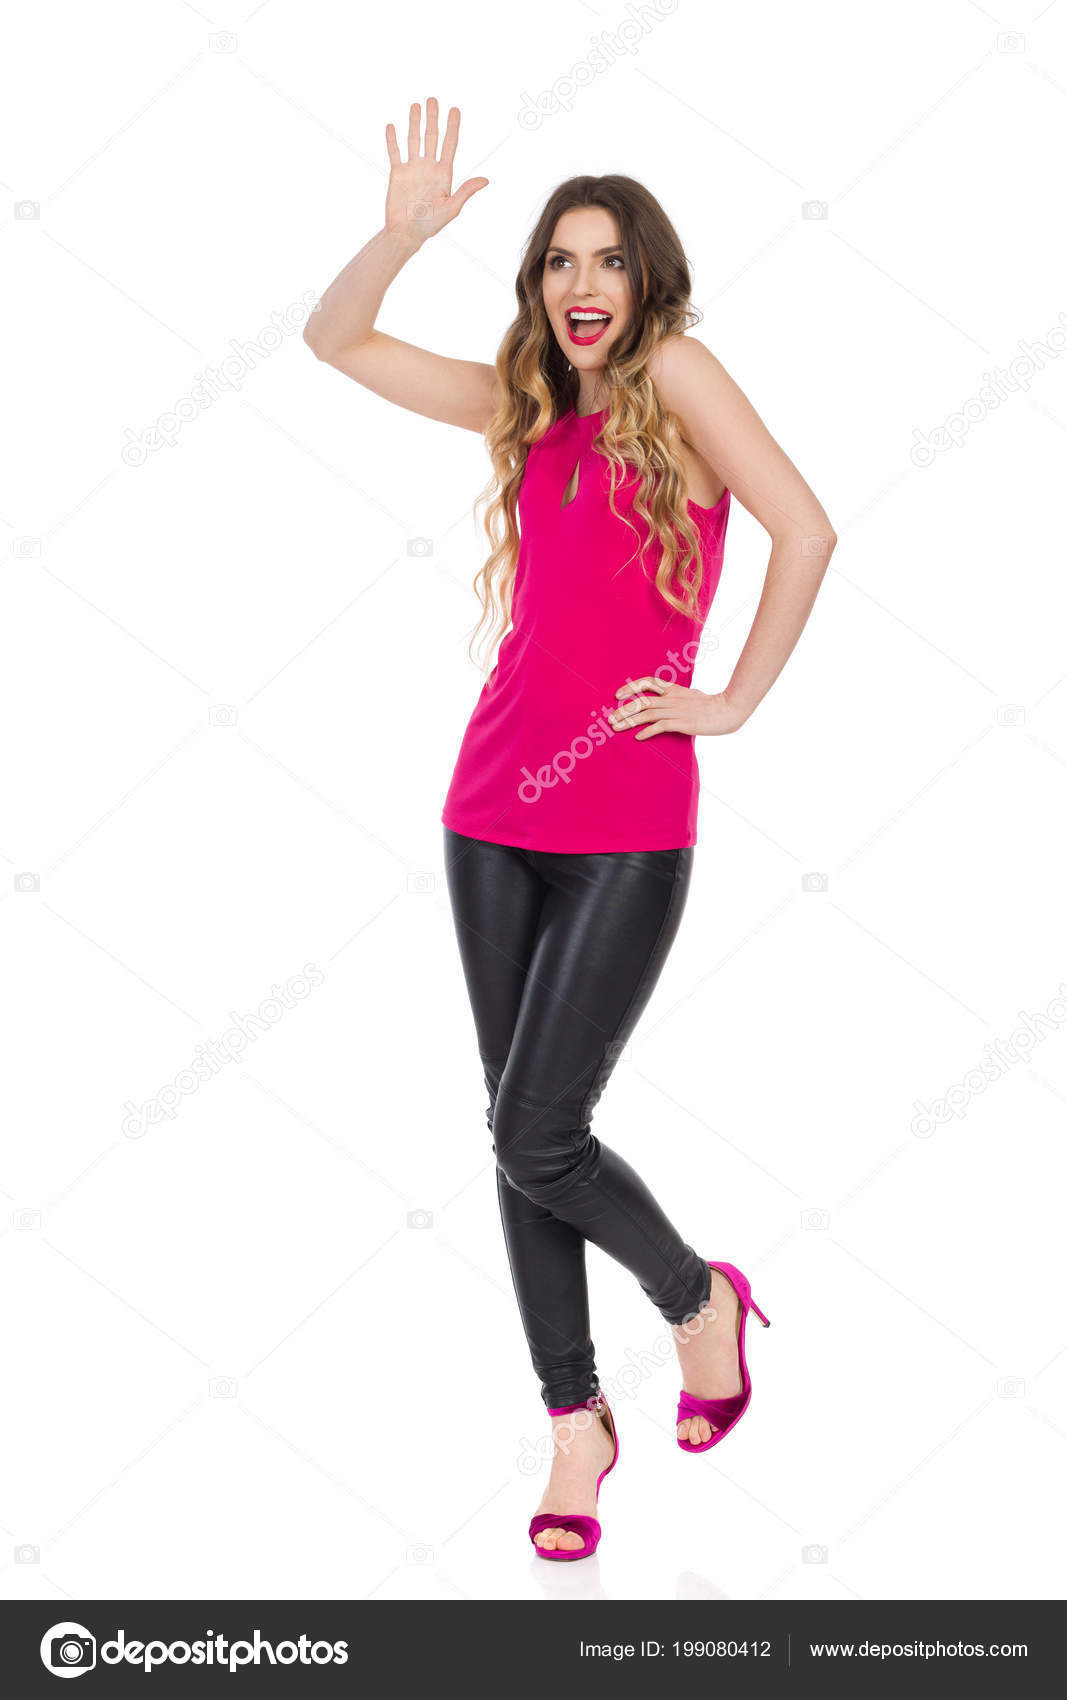 e413e6dcb9c Beautiful Young Woman Black Leather Pants High Heels Pink Top ...